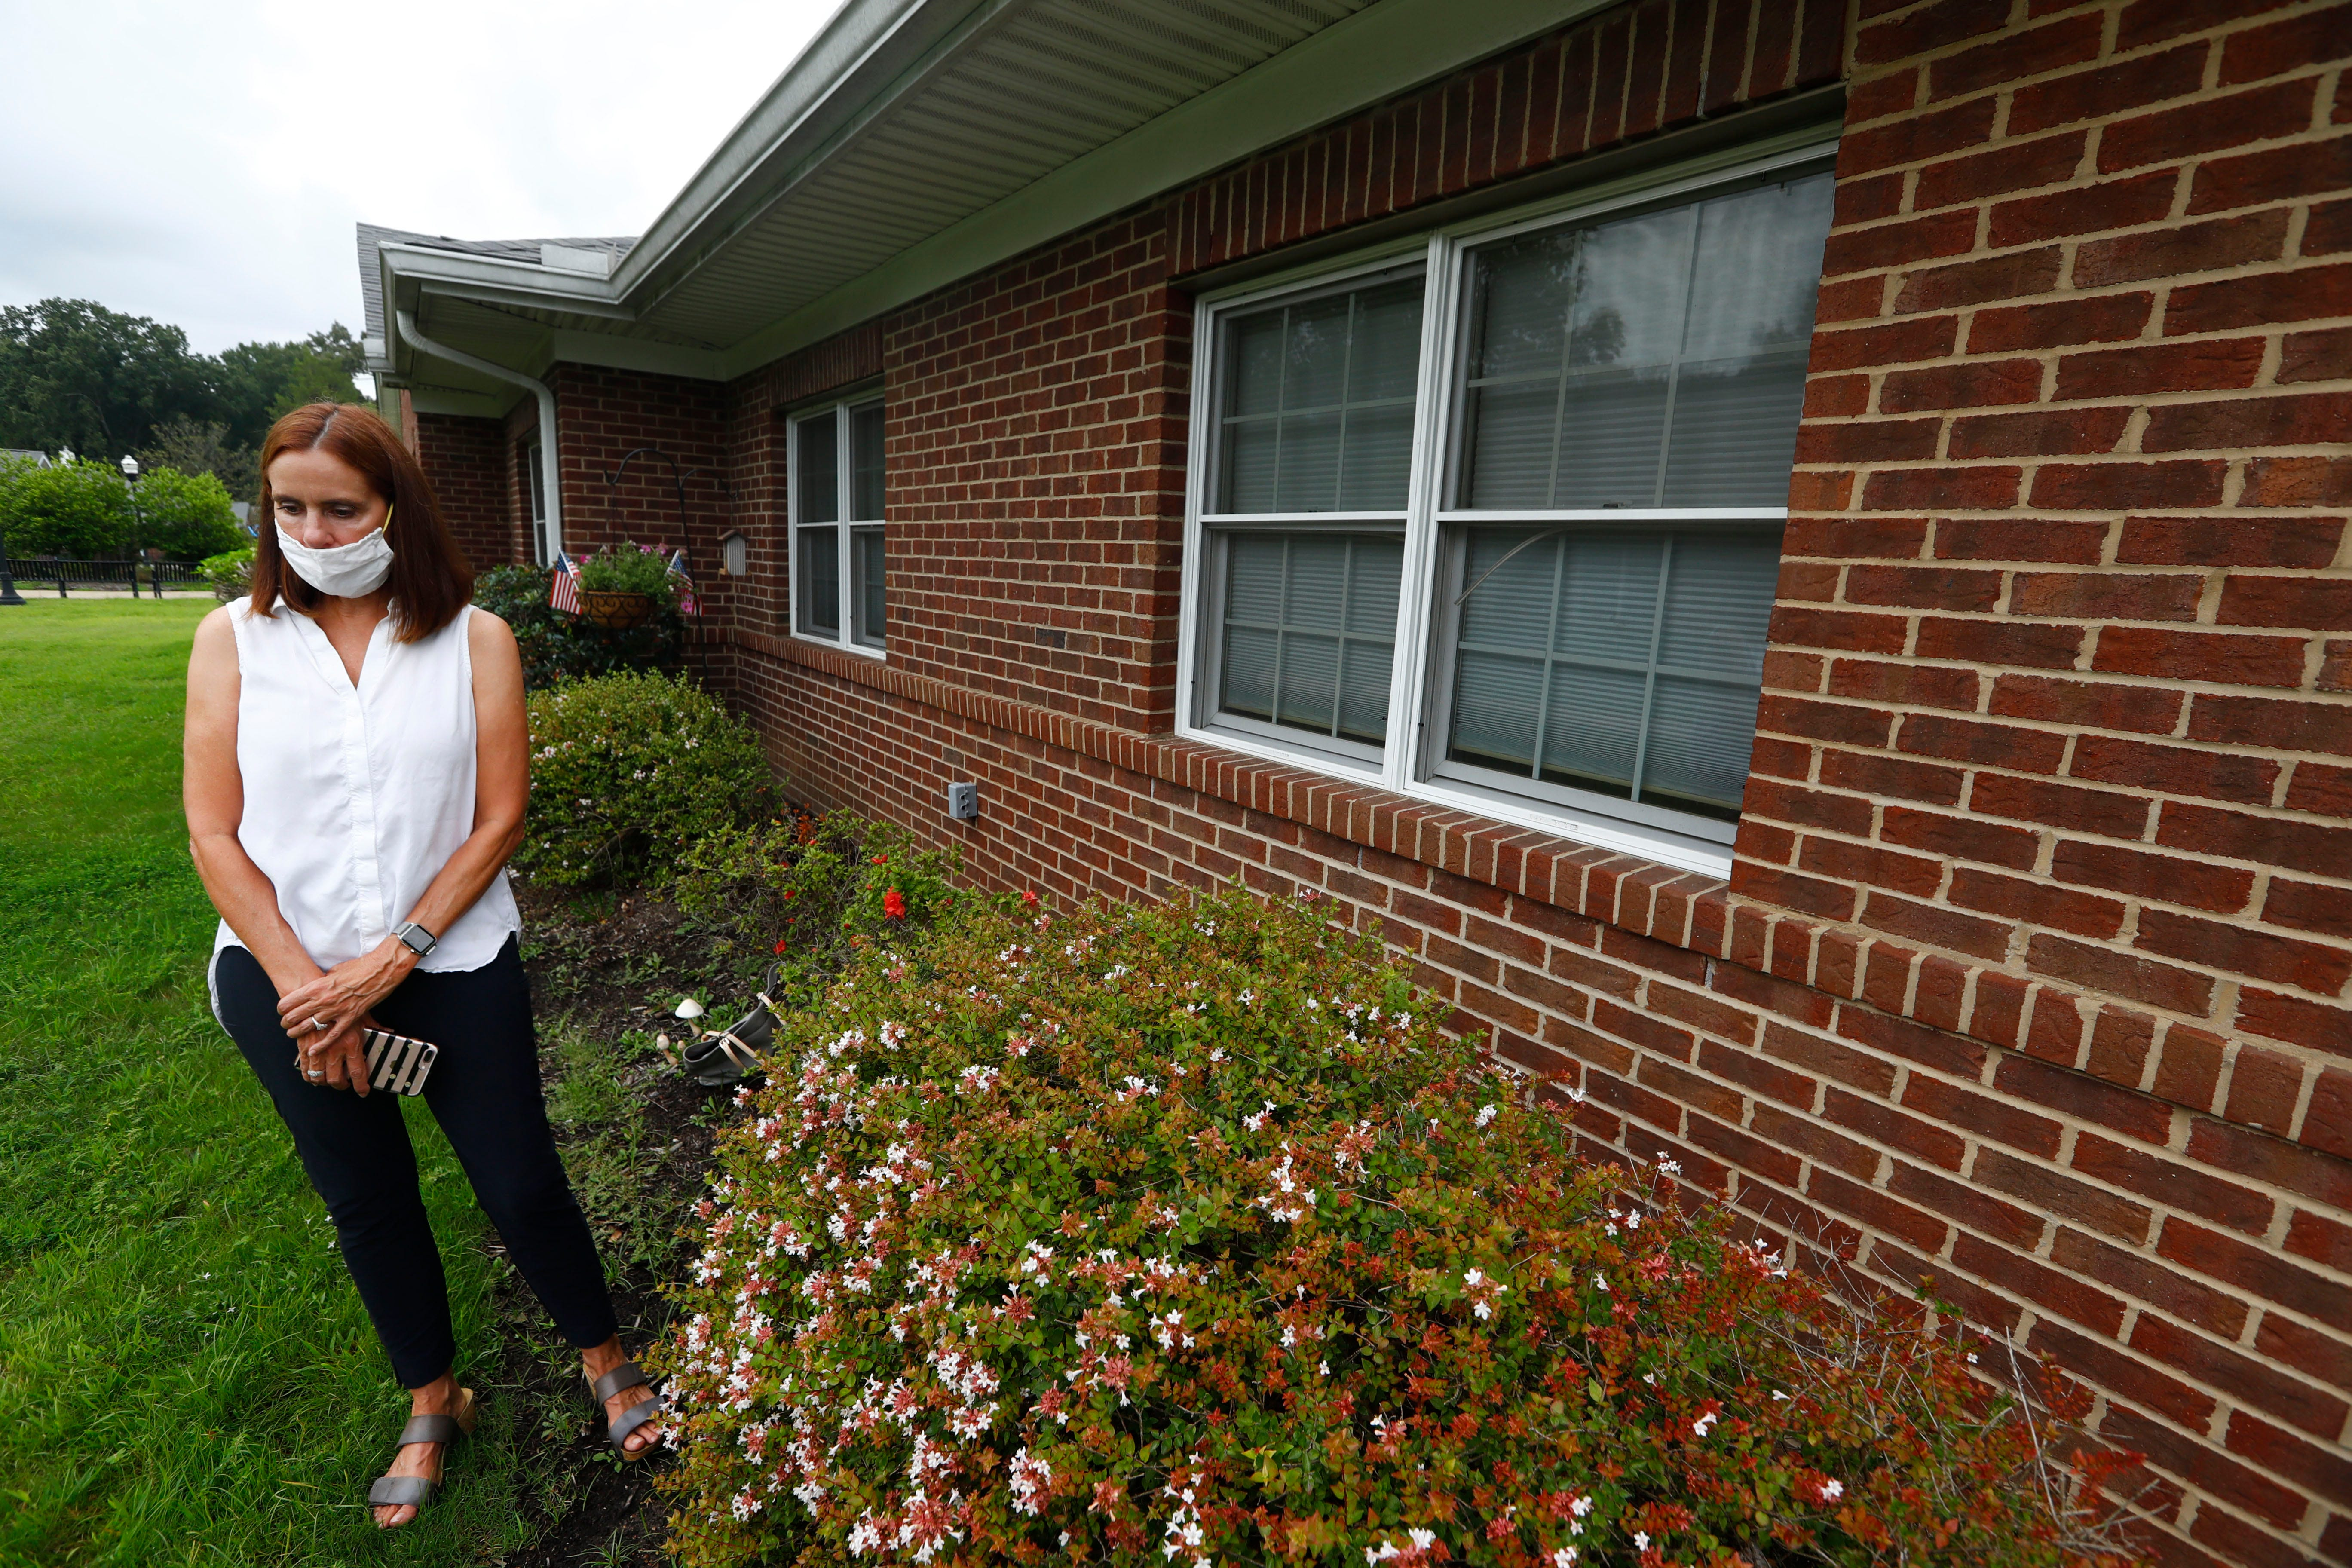 """Maureen Perkins stands outside her mother's window, Maureen Buchman, 89, at her senior living facility just after 10am on Sept. 1, 2020. Buchman, who has dementia, doesn't respond to her daughter on this day. """"This is the first time she has been glazed, says Perkins. """"It's going to be a hard one to put behind me today."""""""